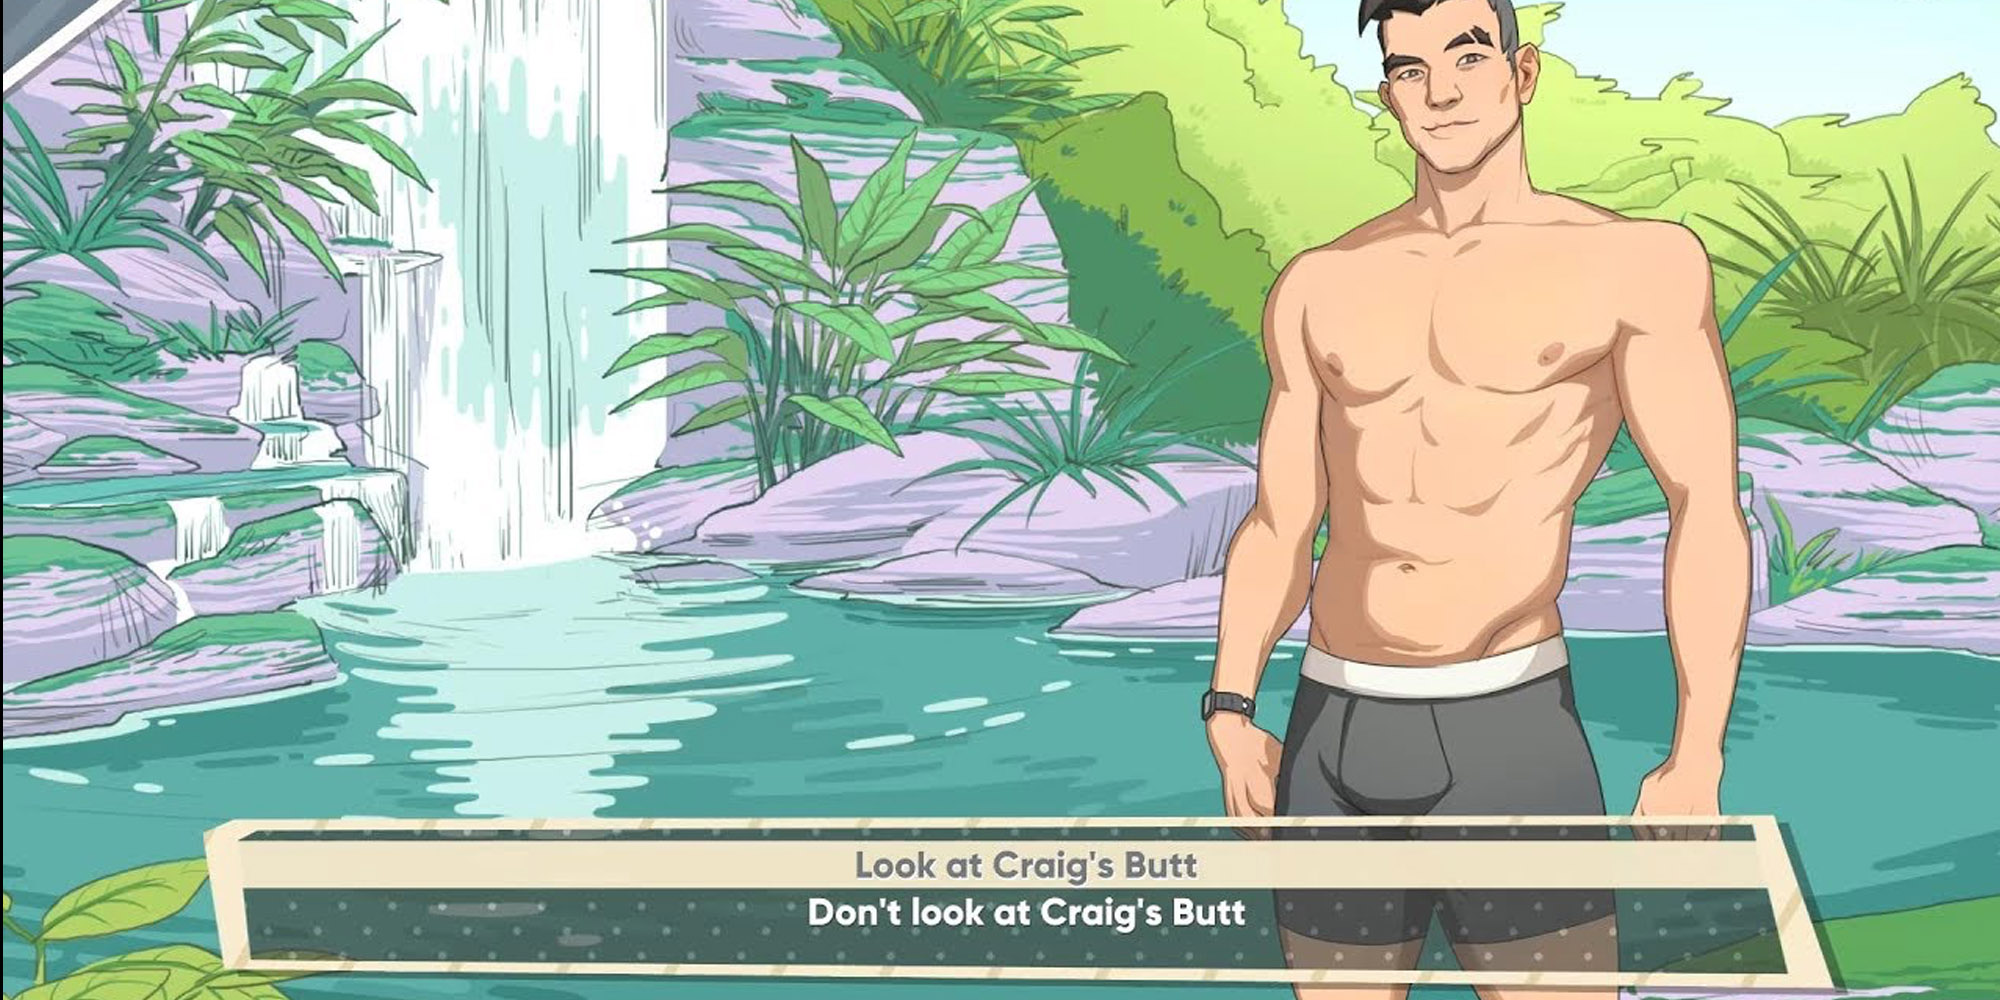 Sexy Gay Video Games, Dream Daddy